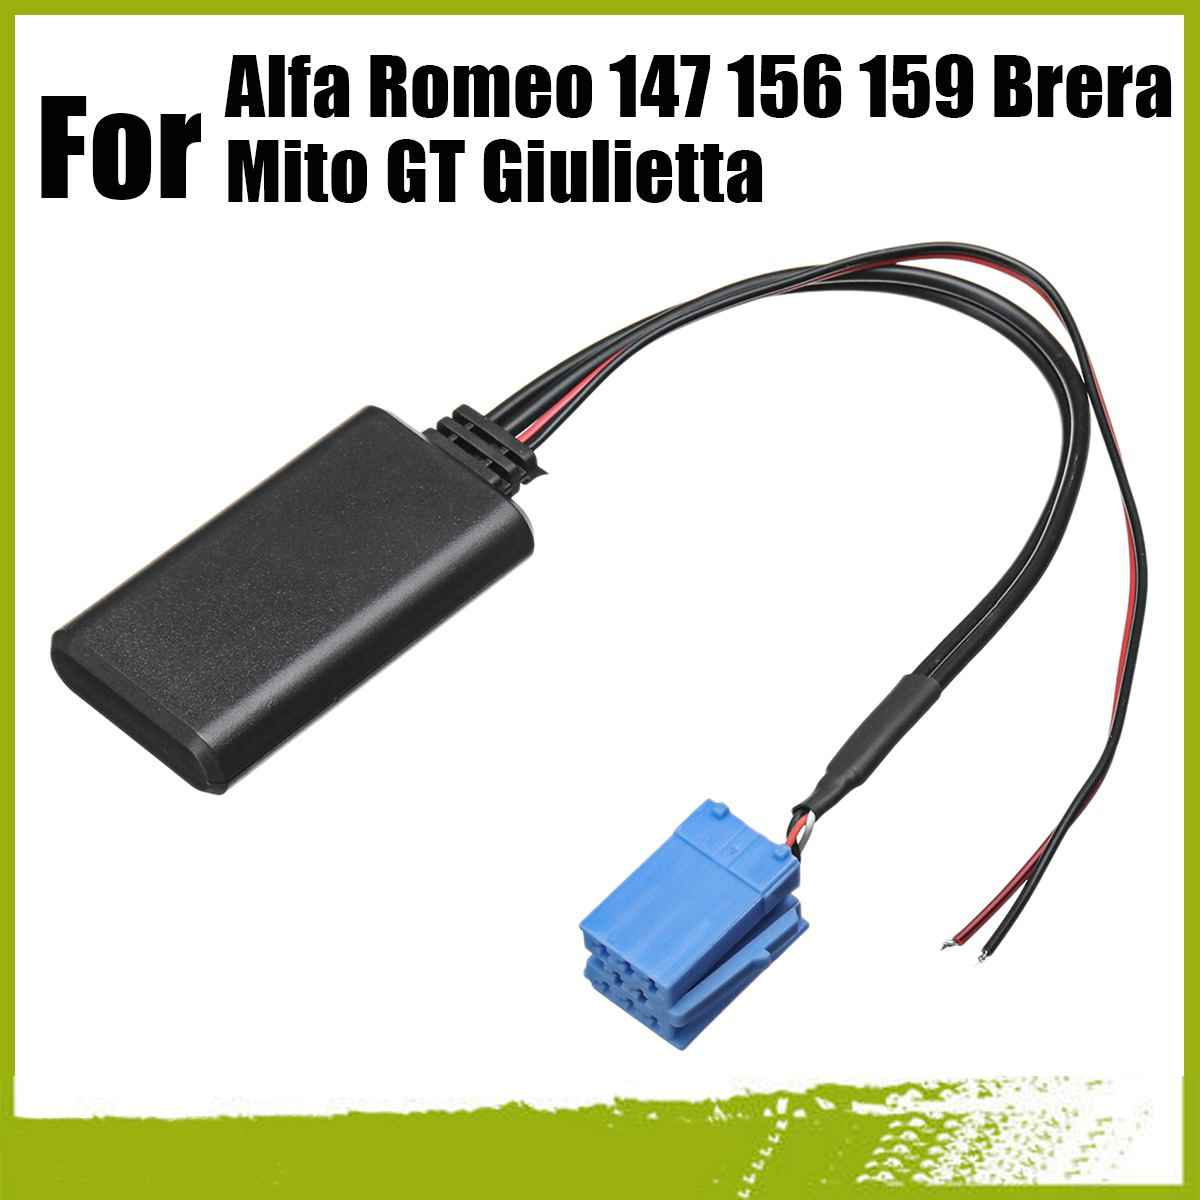 For Alfa Romeo 147 156 159 Brera Mito GT Giulietta 8Pin Bluetooth Audio Adapter Interface Radio bluetooth AUX Wiring